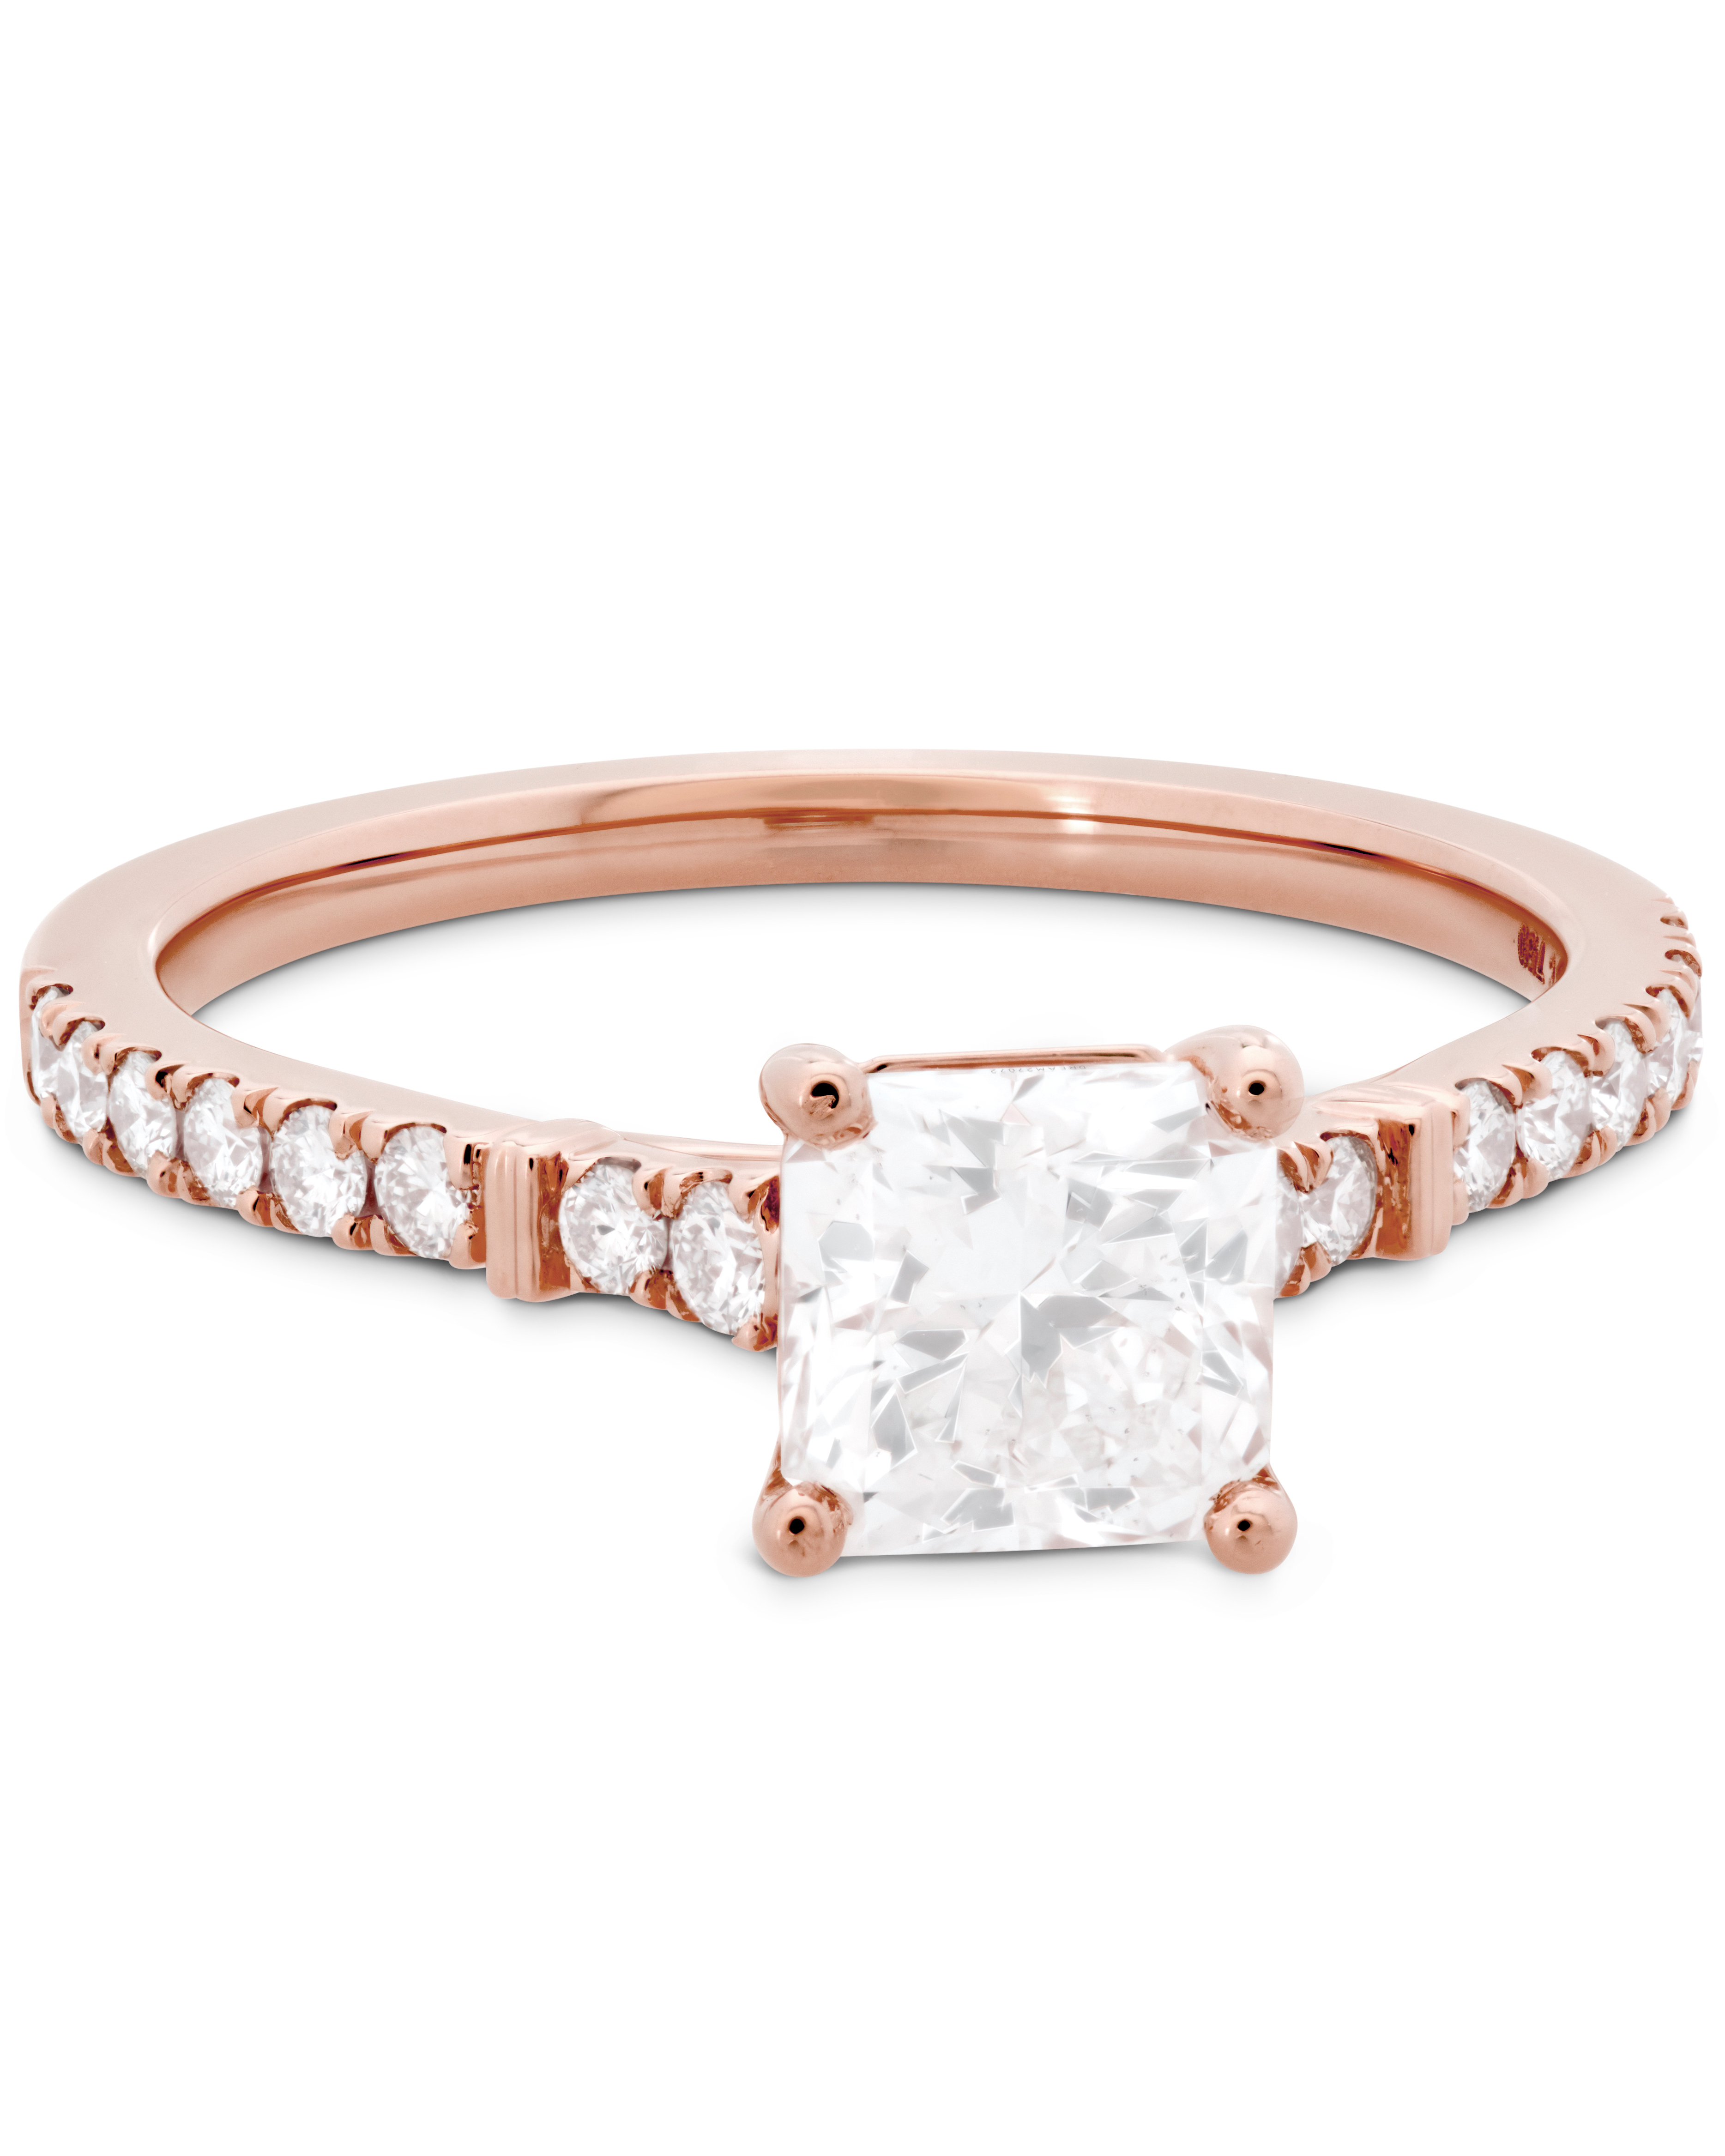 hearts-on-fire-rose-gold-cali-chic-dream-rope-engagement-ring-0816.jpg